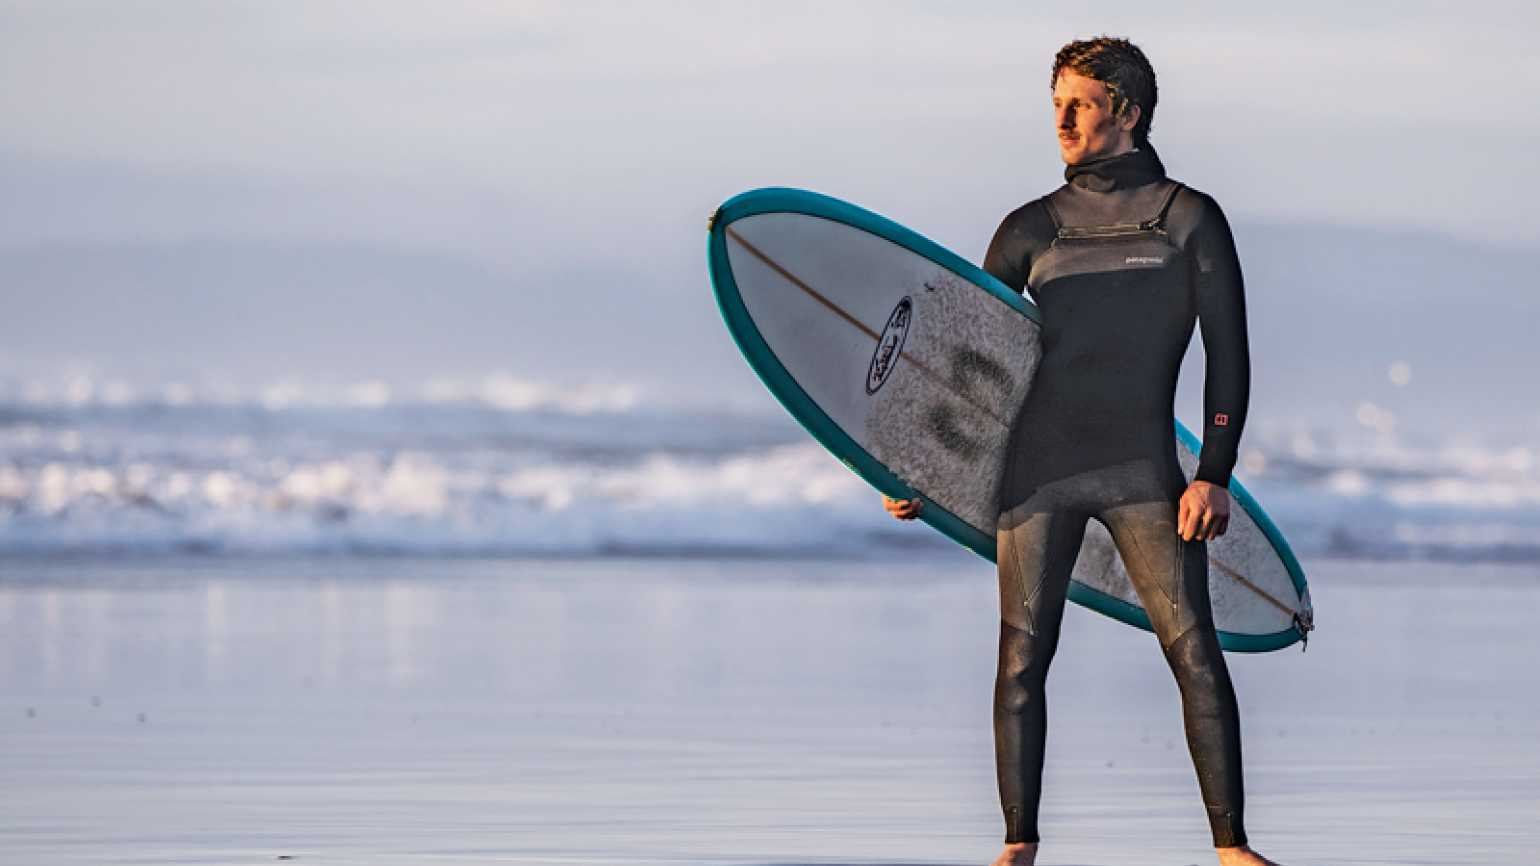 Scott Stephens stands on the beach, surfboard under his arm.